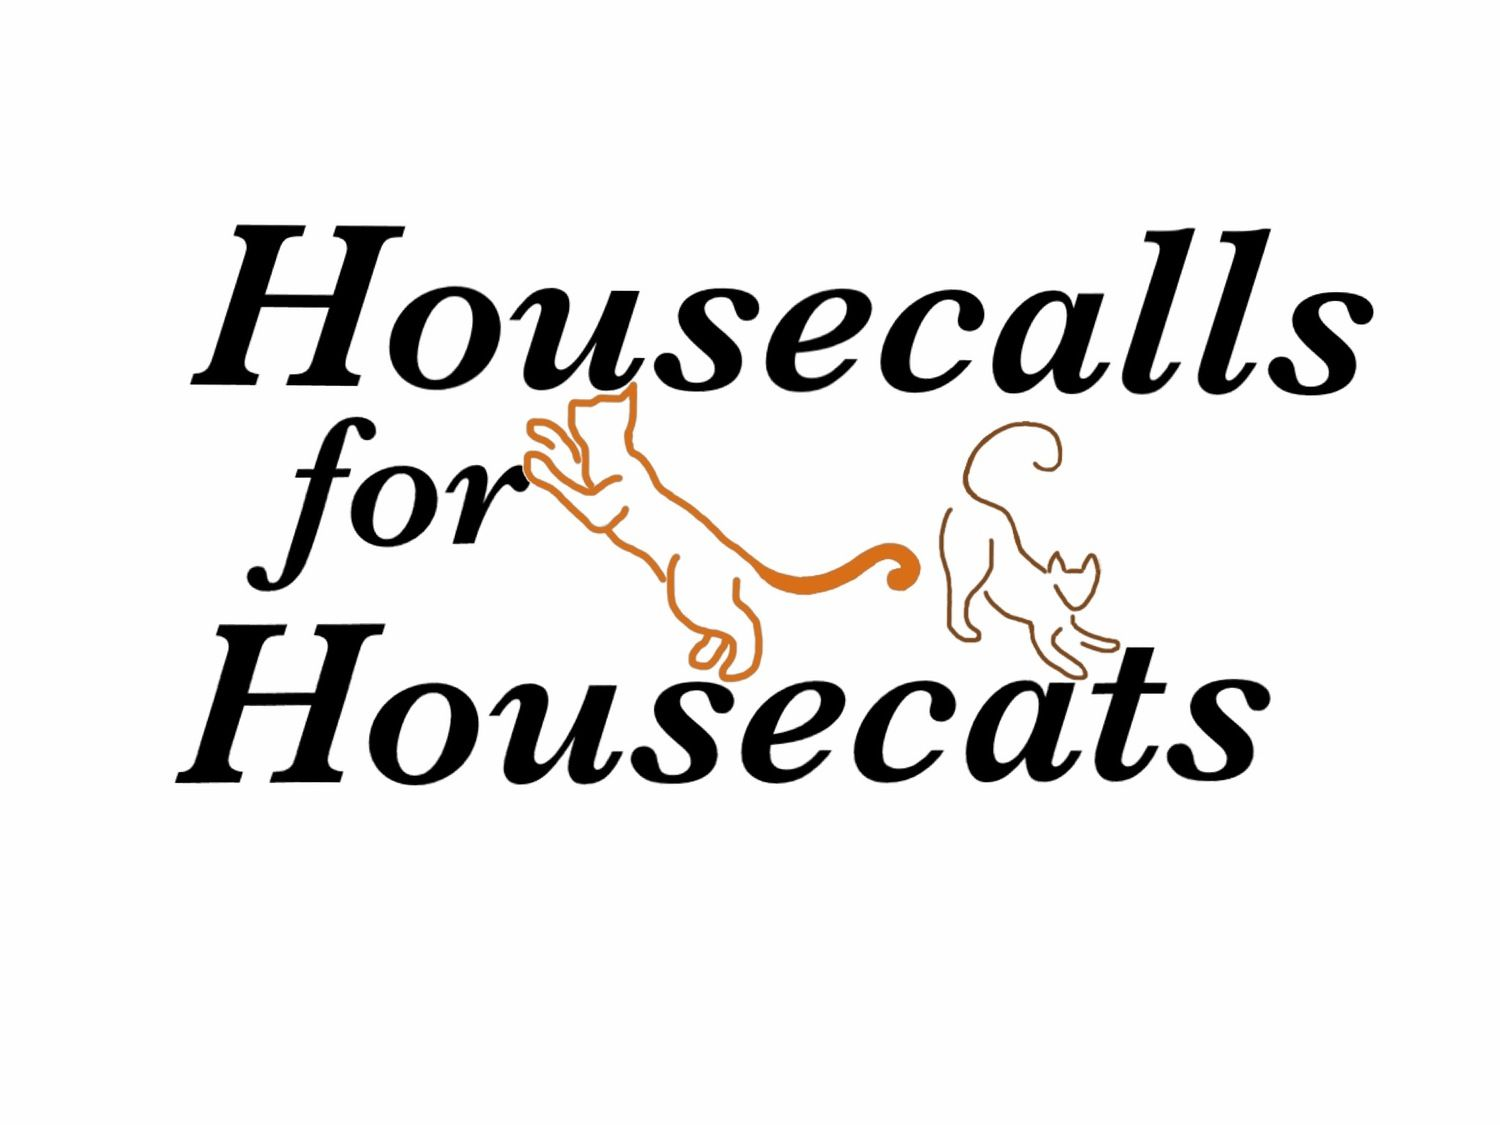 Housecalls for Housecats Veterinary services, Vet